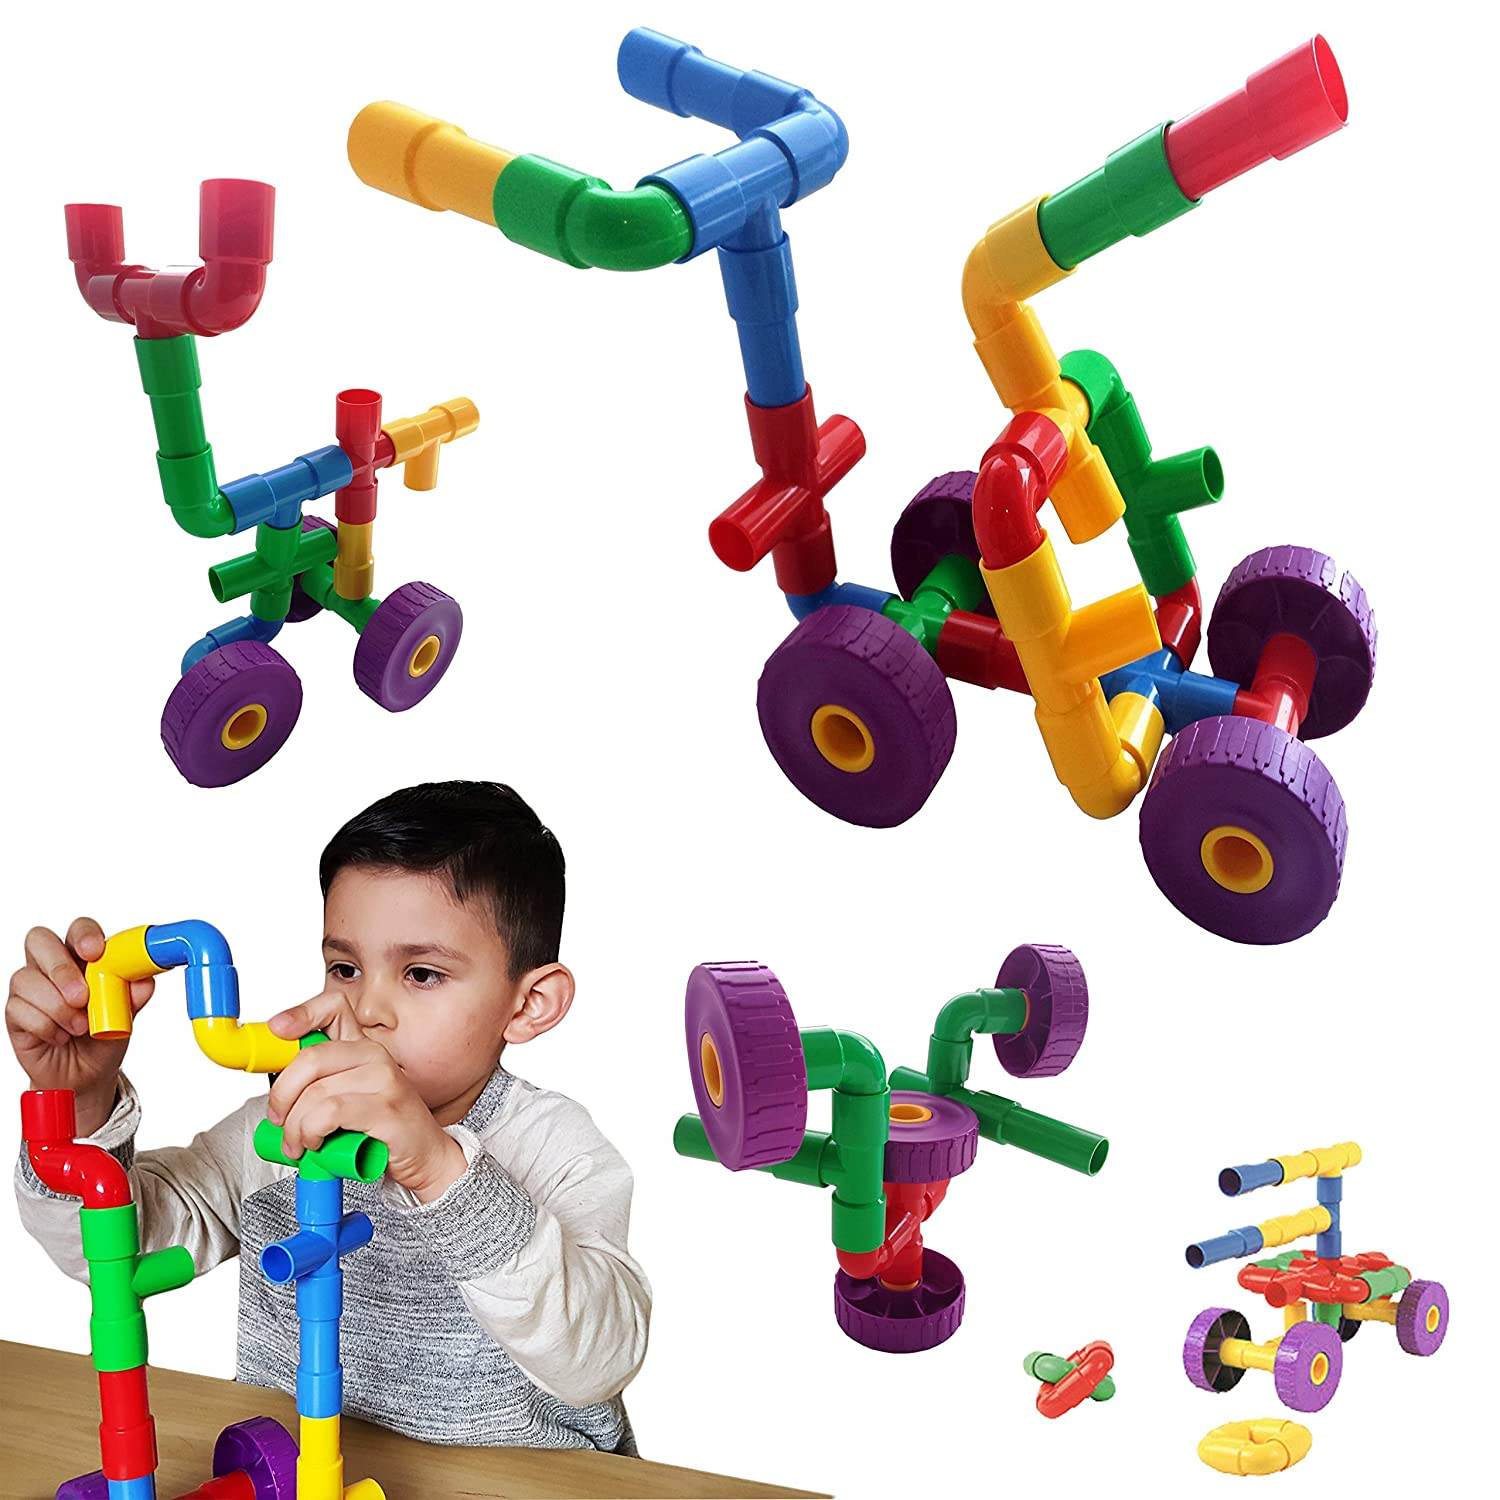 Skoolzy Kids Toys 30 pc Pipe & Joint Construction Sets. Educational Toys for Toddler 3, 4 and 5 year old Boys and Girls. Best STEM Engineering Design Building Blocks Sets.– Fine Motor Skills Review